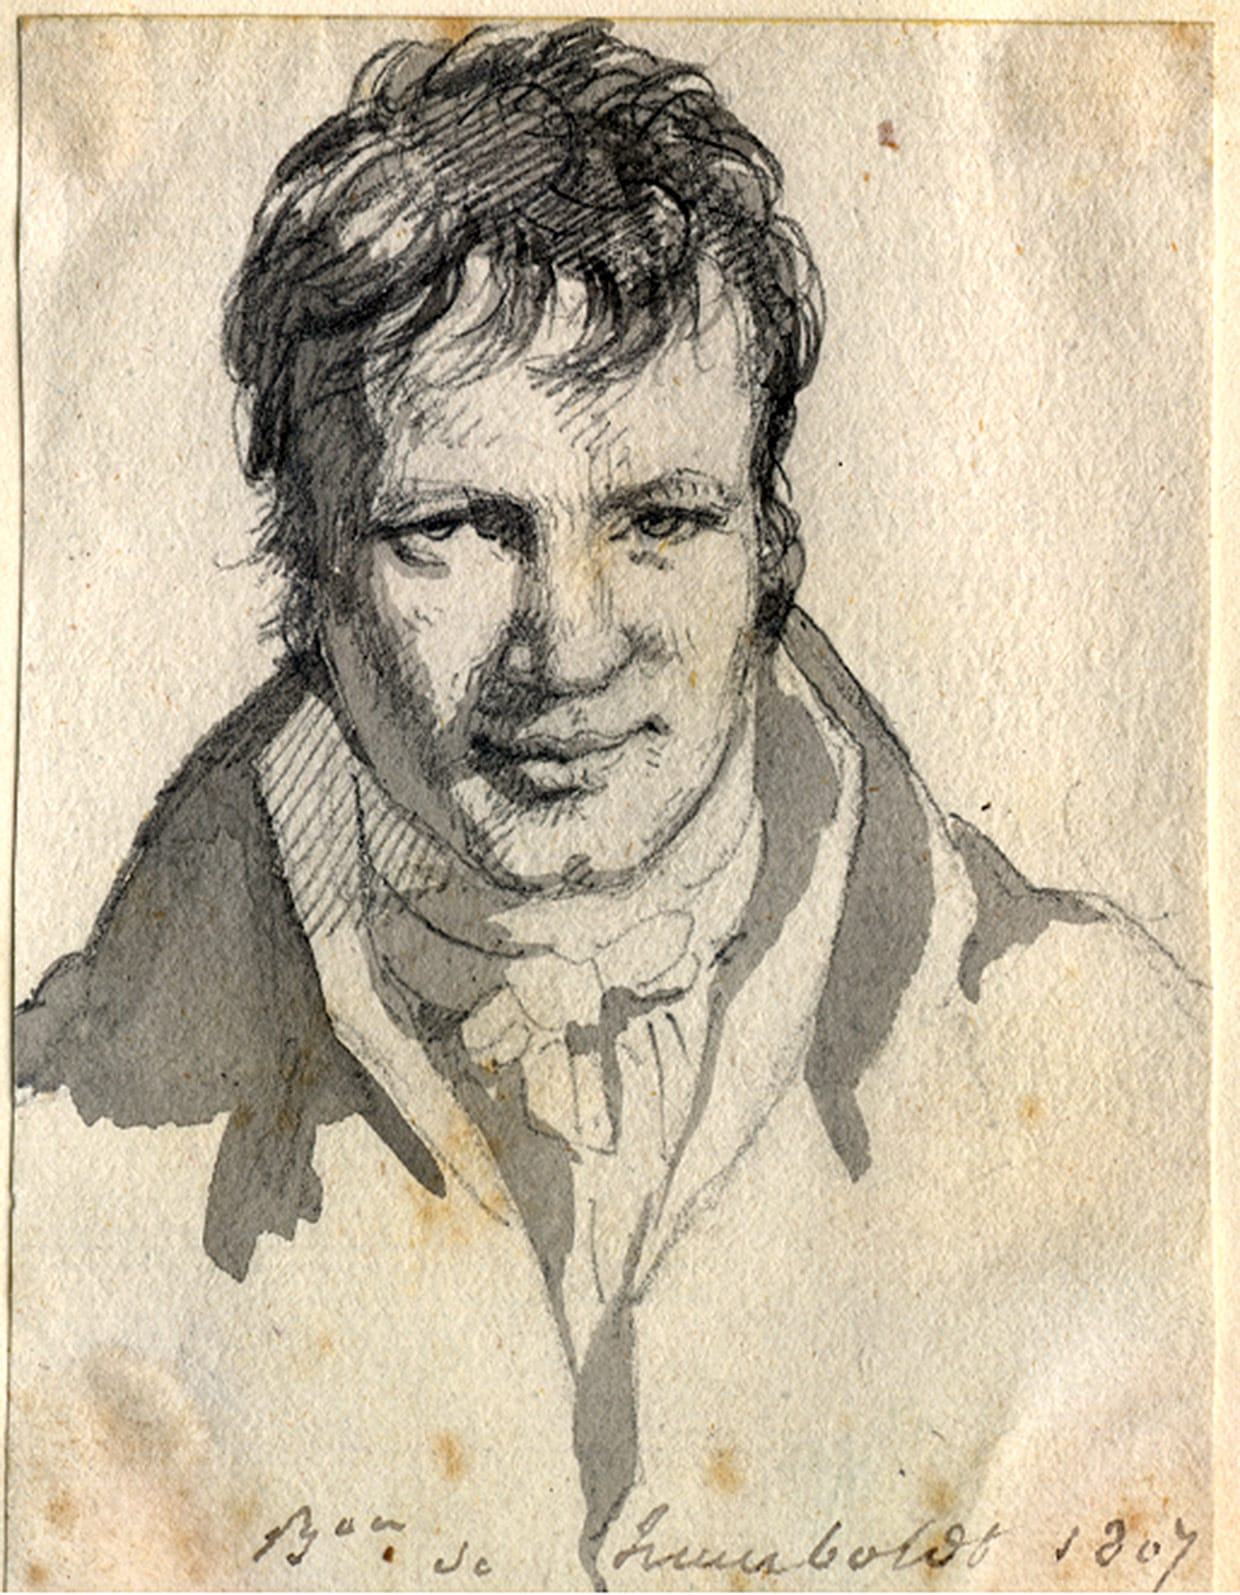 Sketch of Alexander Von Humboldt